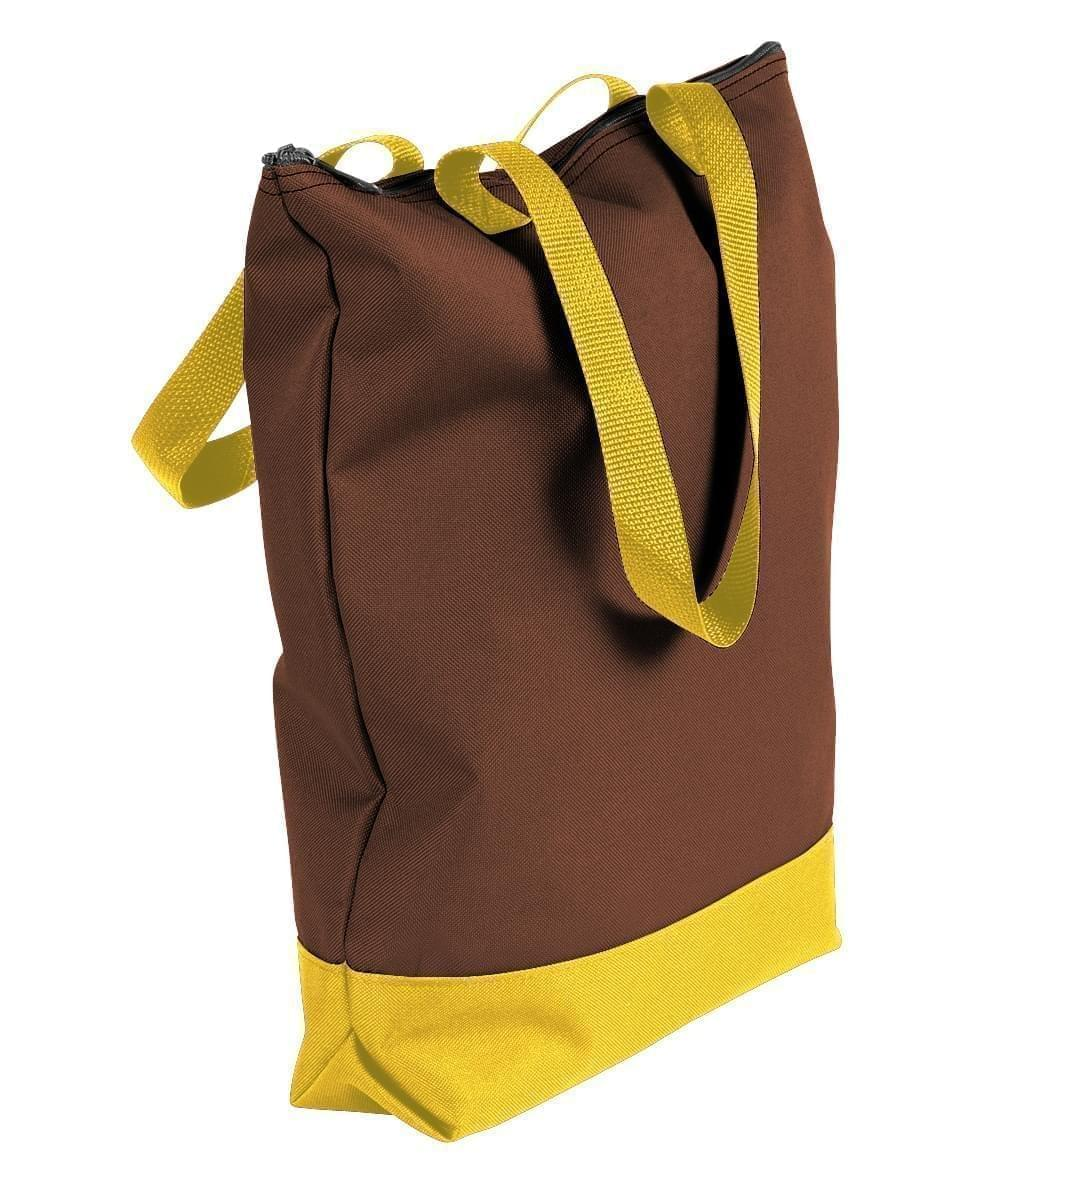 USA Made Canvas Portfolio Tote Bags, Brown-Gold, 1AAMX1UAA5